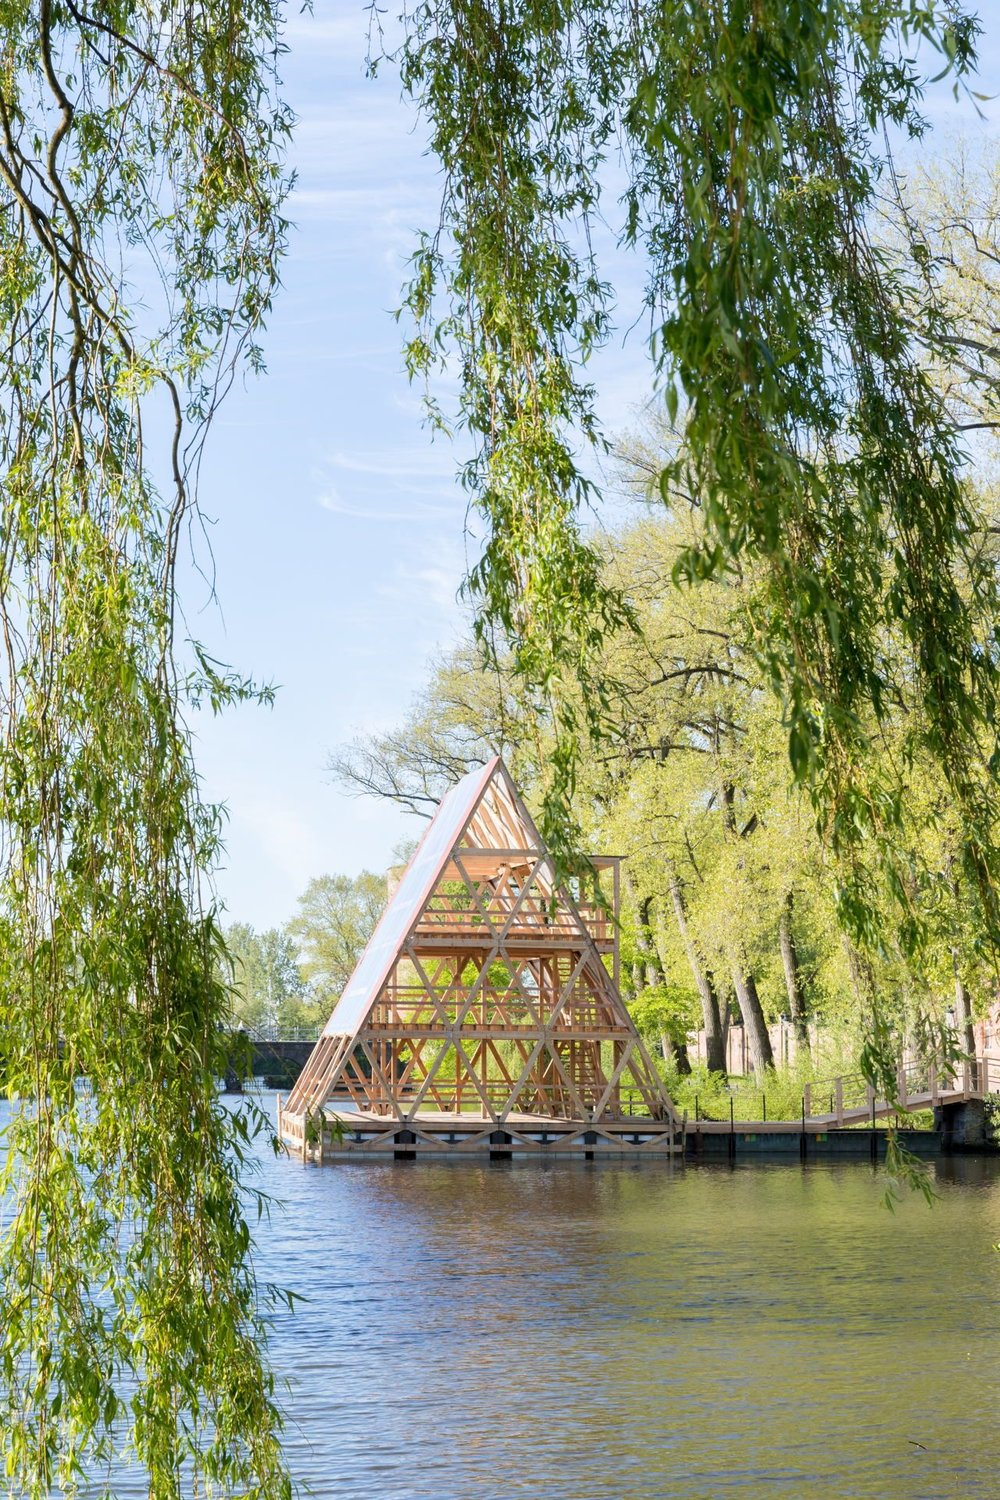 Triennial Bruges -Architectural artworks. - This year, with the overarching theme of 'Liquid society', Triennial Bruges contemplates our rapidly changing world through architecture; as established ways of life are under pressure, what does the future hold?..